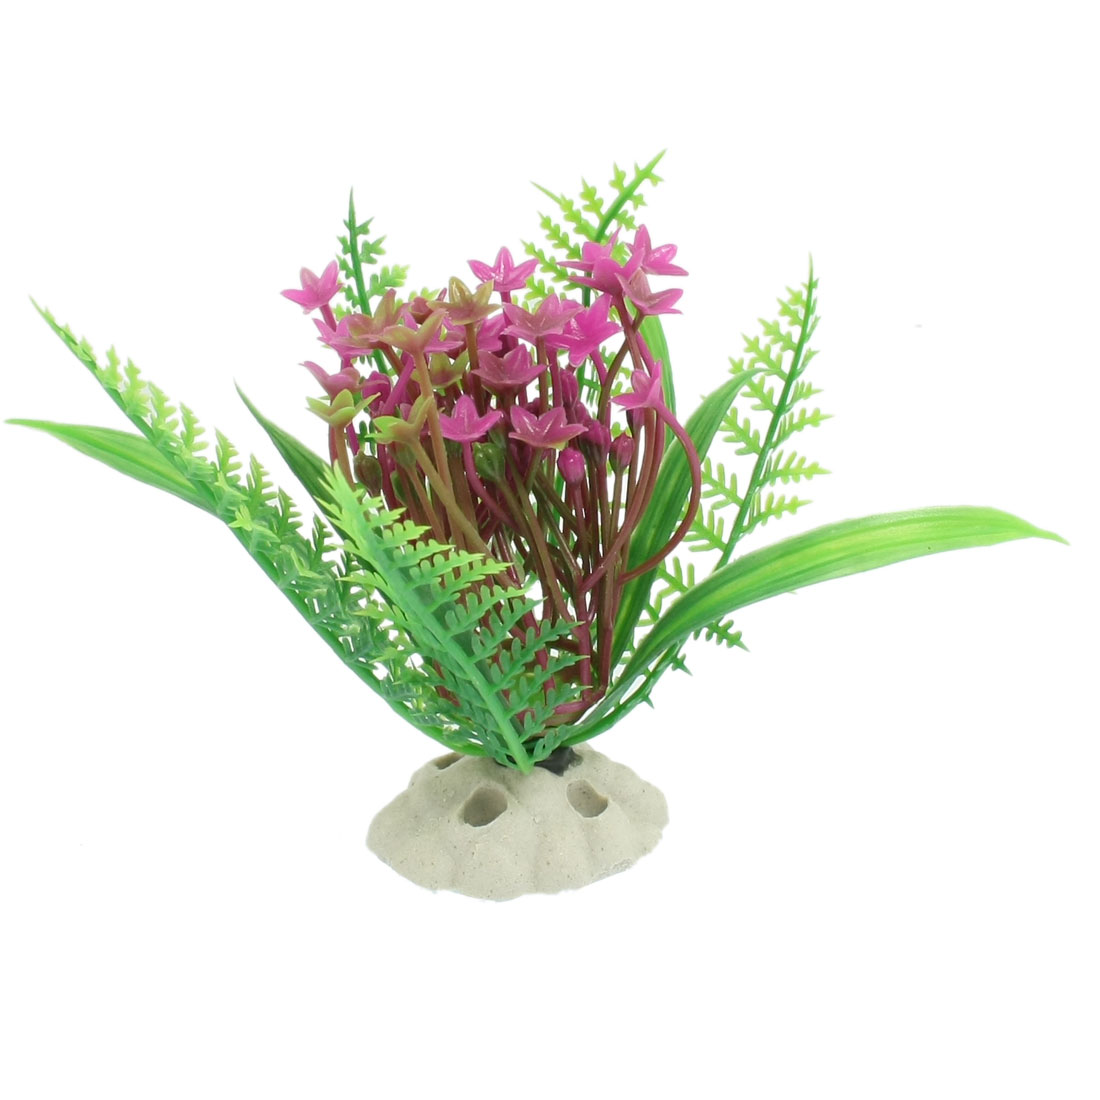 Ceramic Base Aquarium Plastic Plant Decoration Ornament Green Fuchsia 3.6""